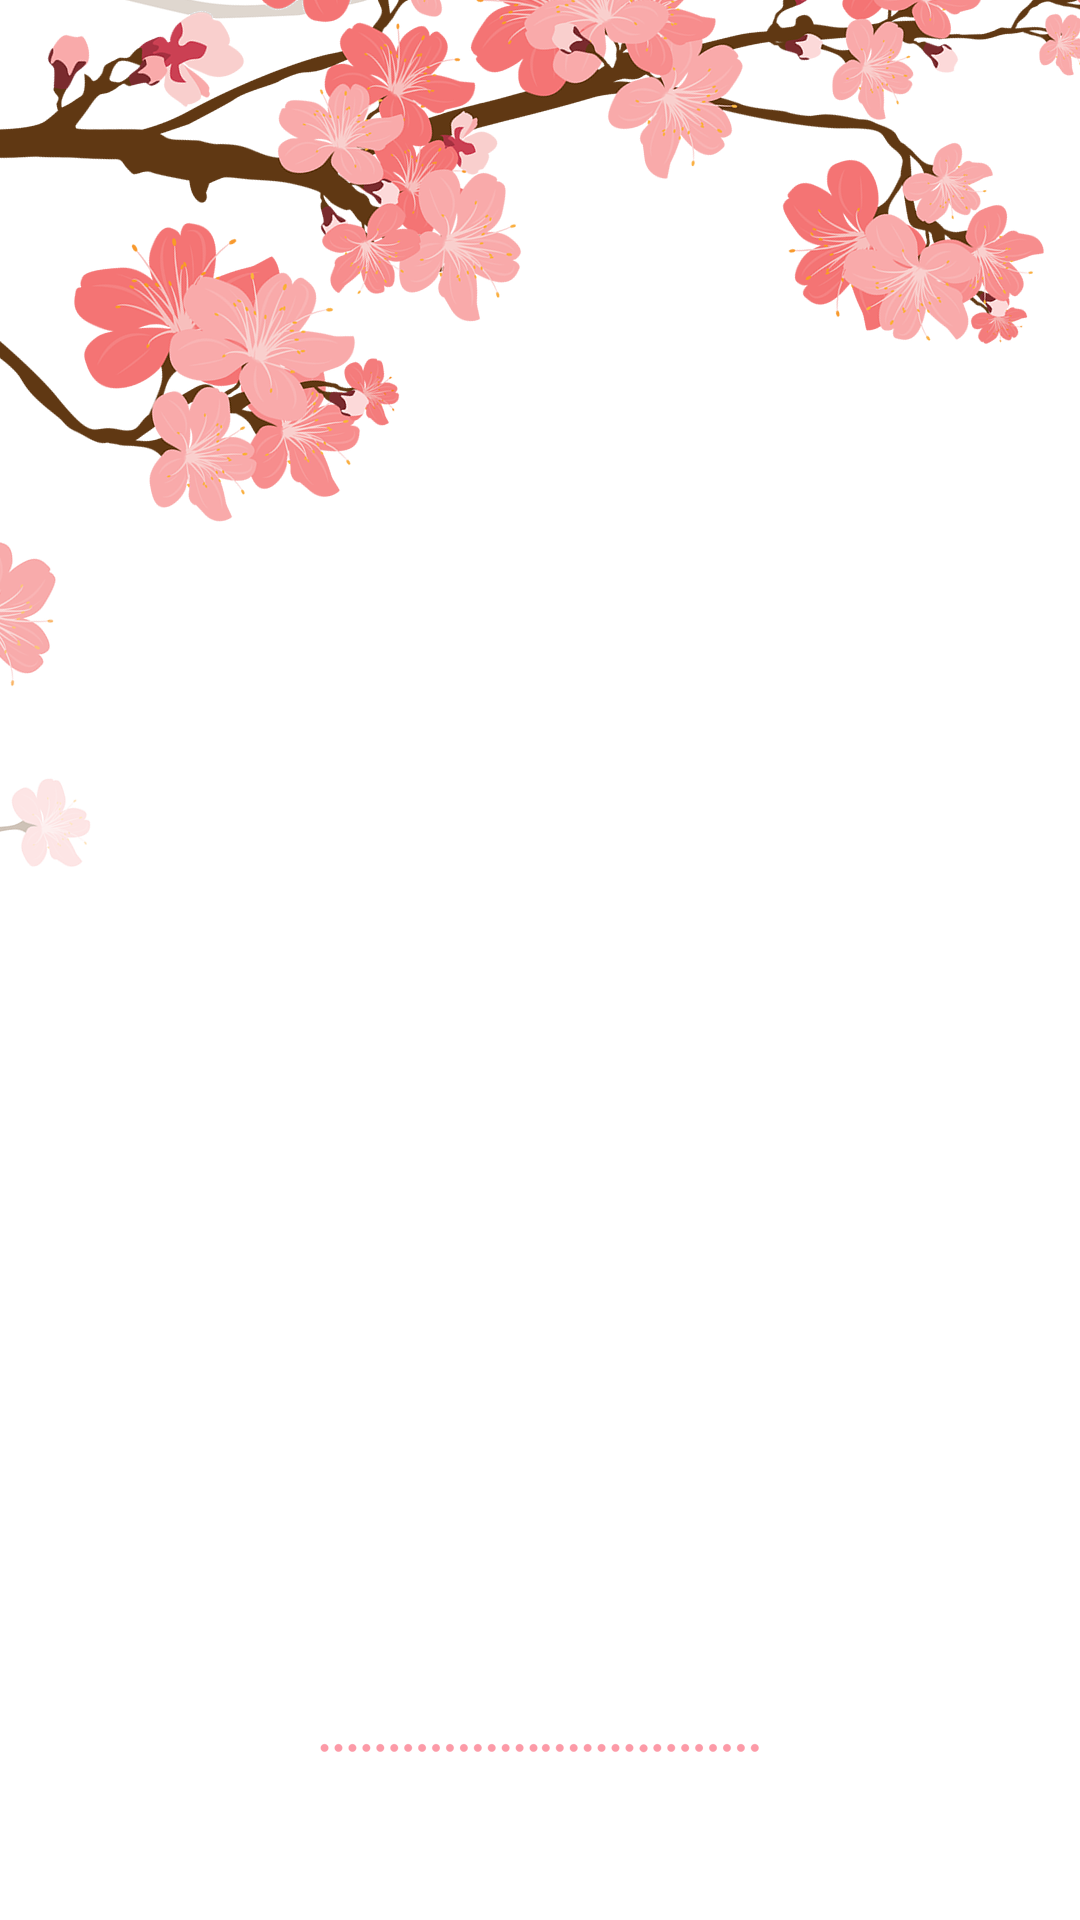 Cherry blossom leaves falling png. Wedding snapchat filter geofilter